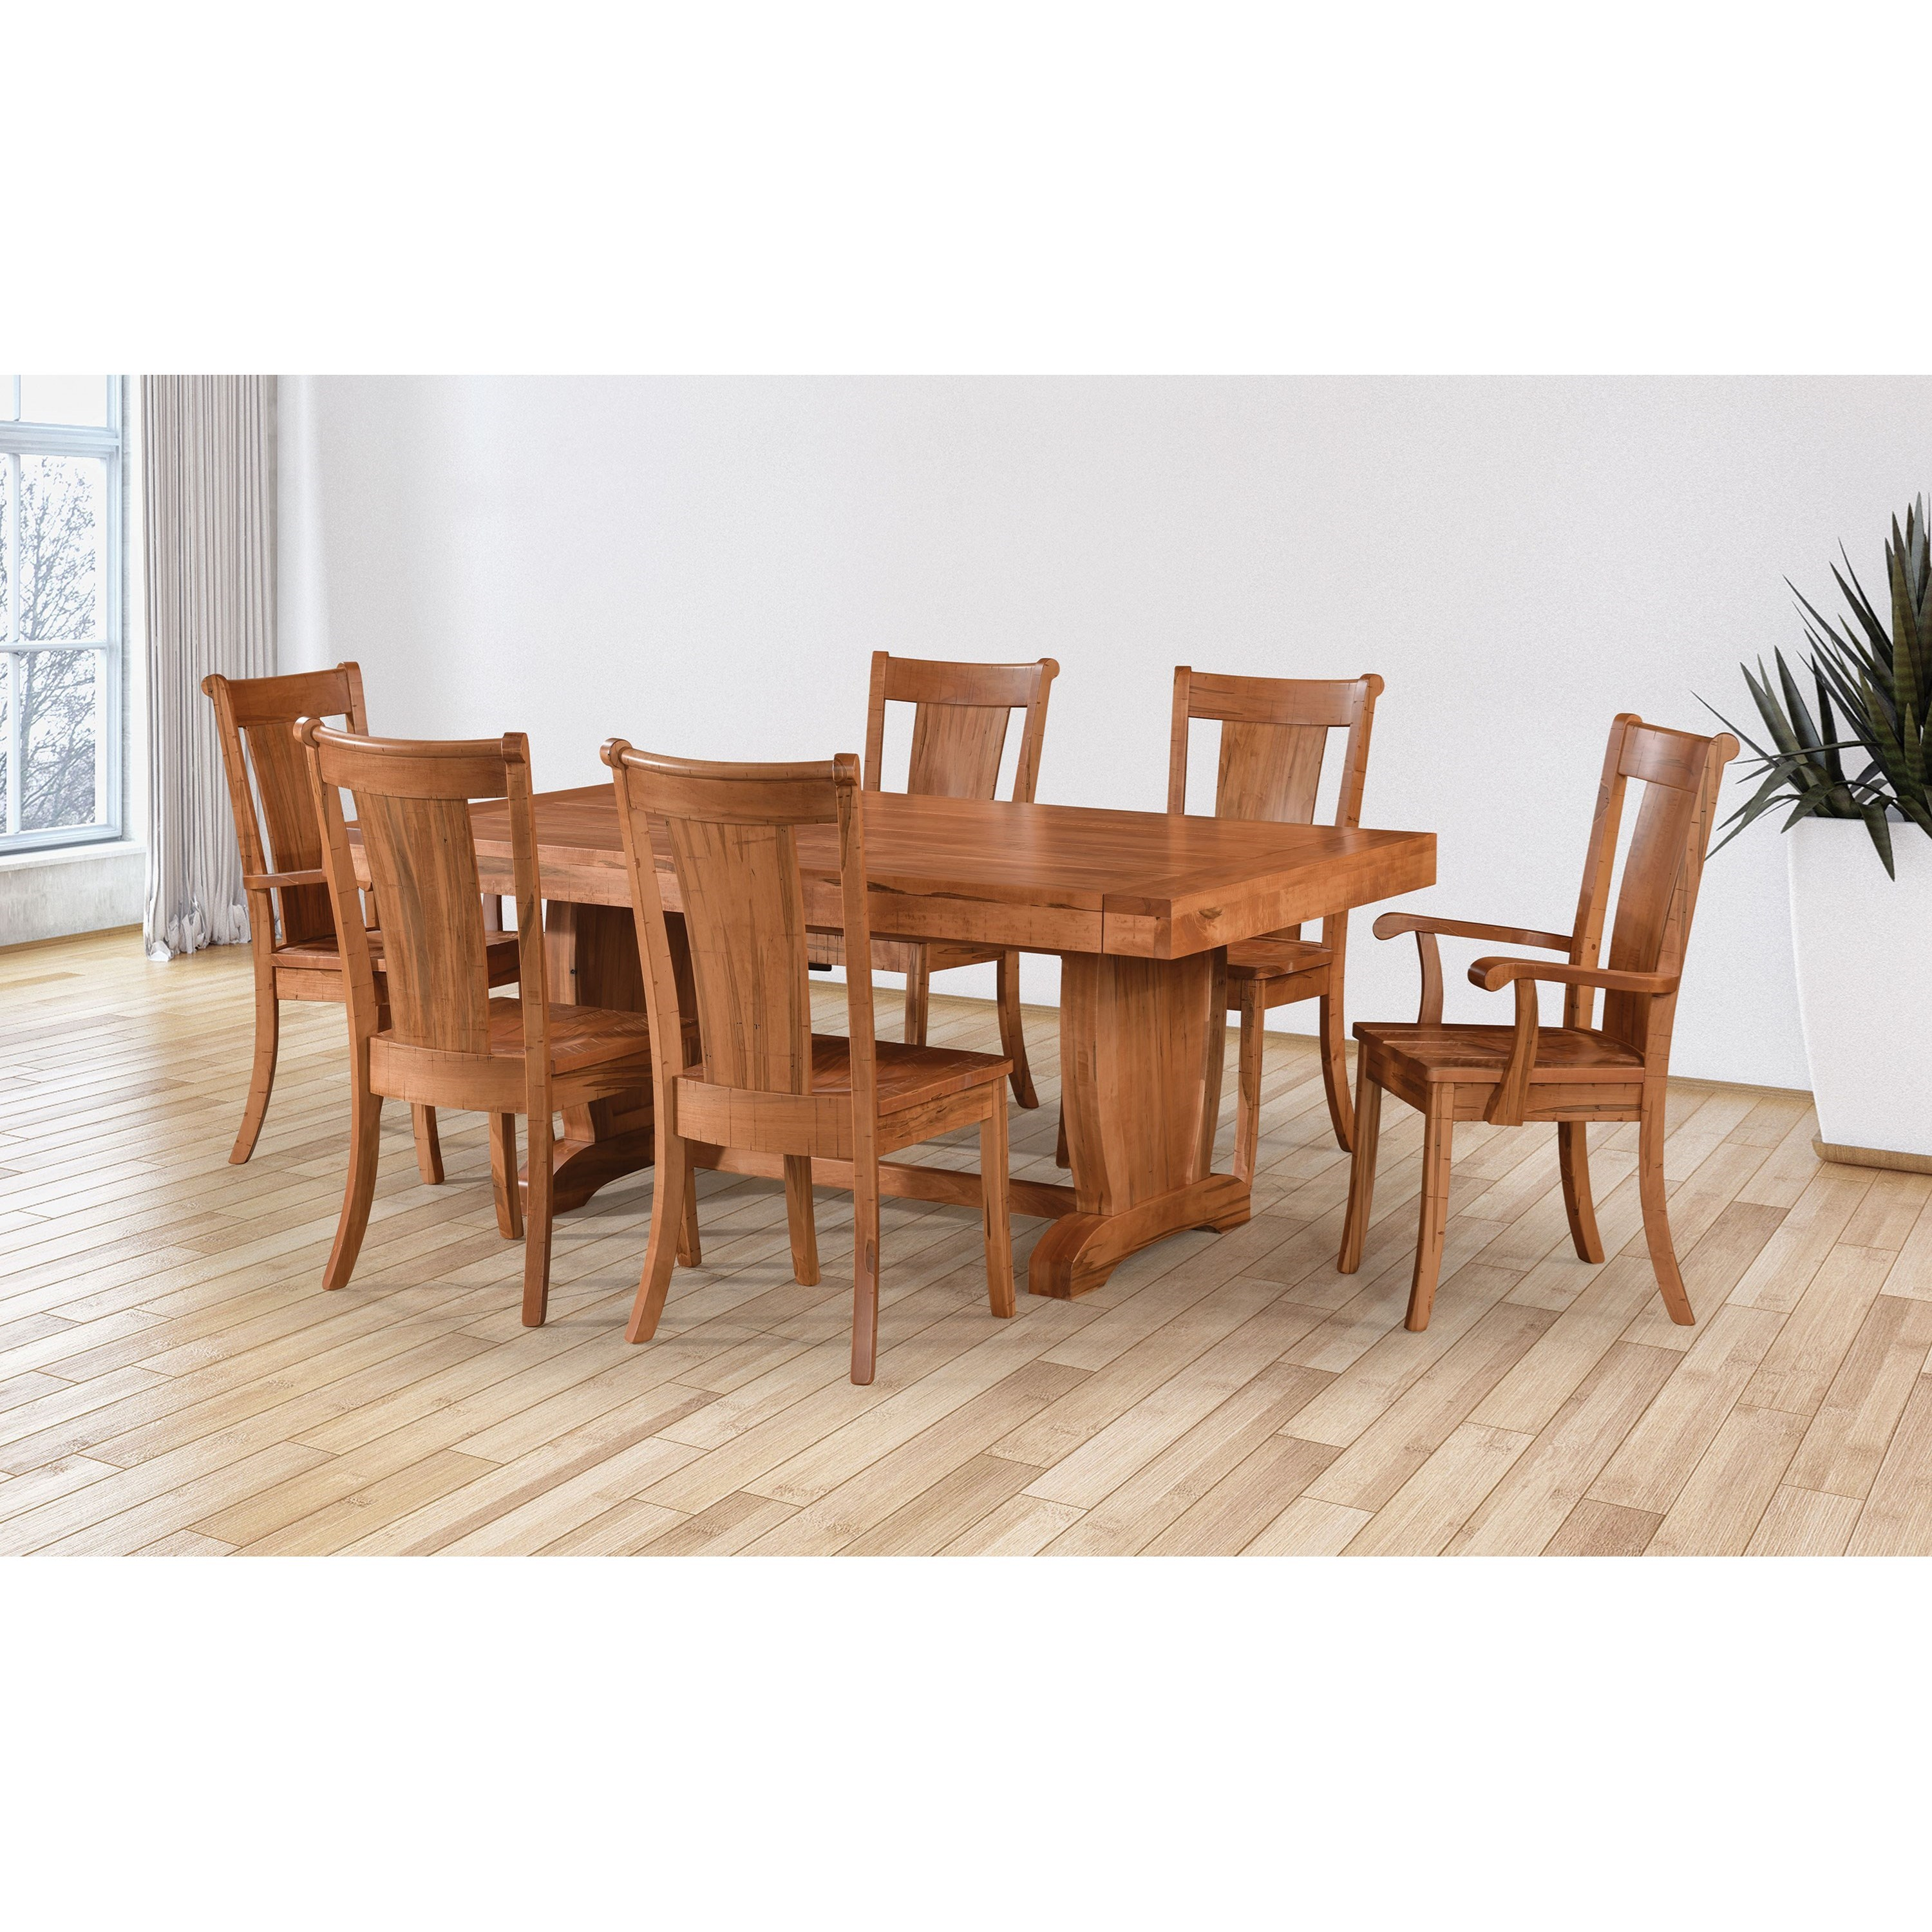 Chuckwagon Customizable Dining Table & Chair Set by Weaver Woodcraft at Saugerties Furniture Mart